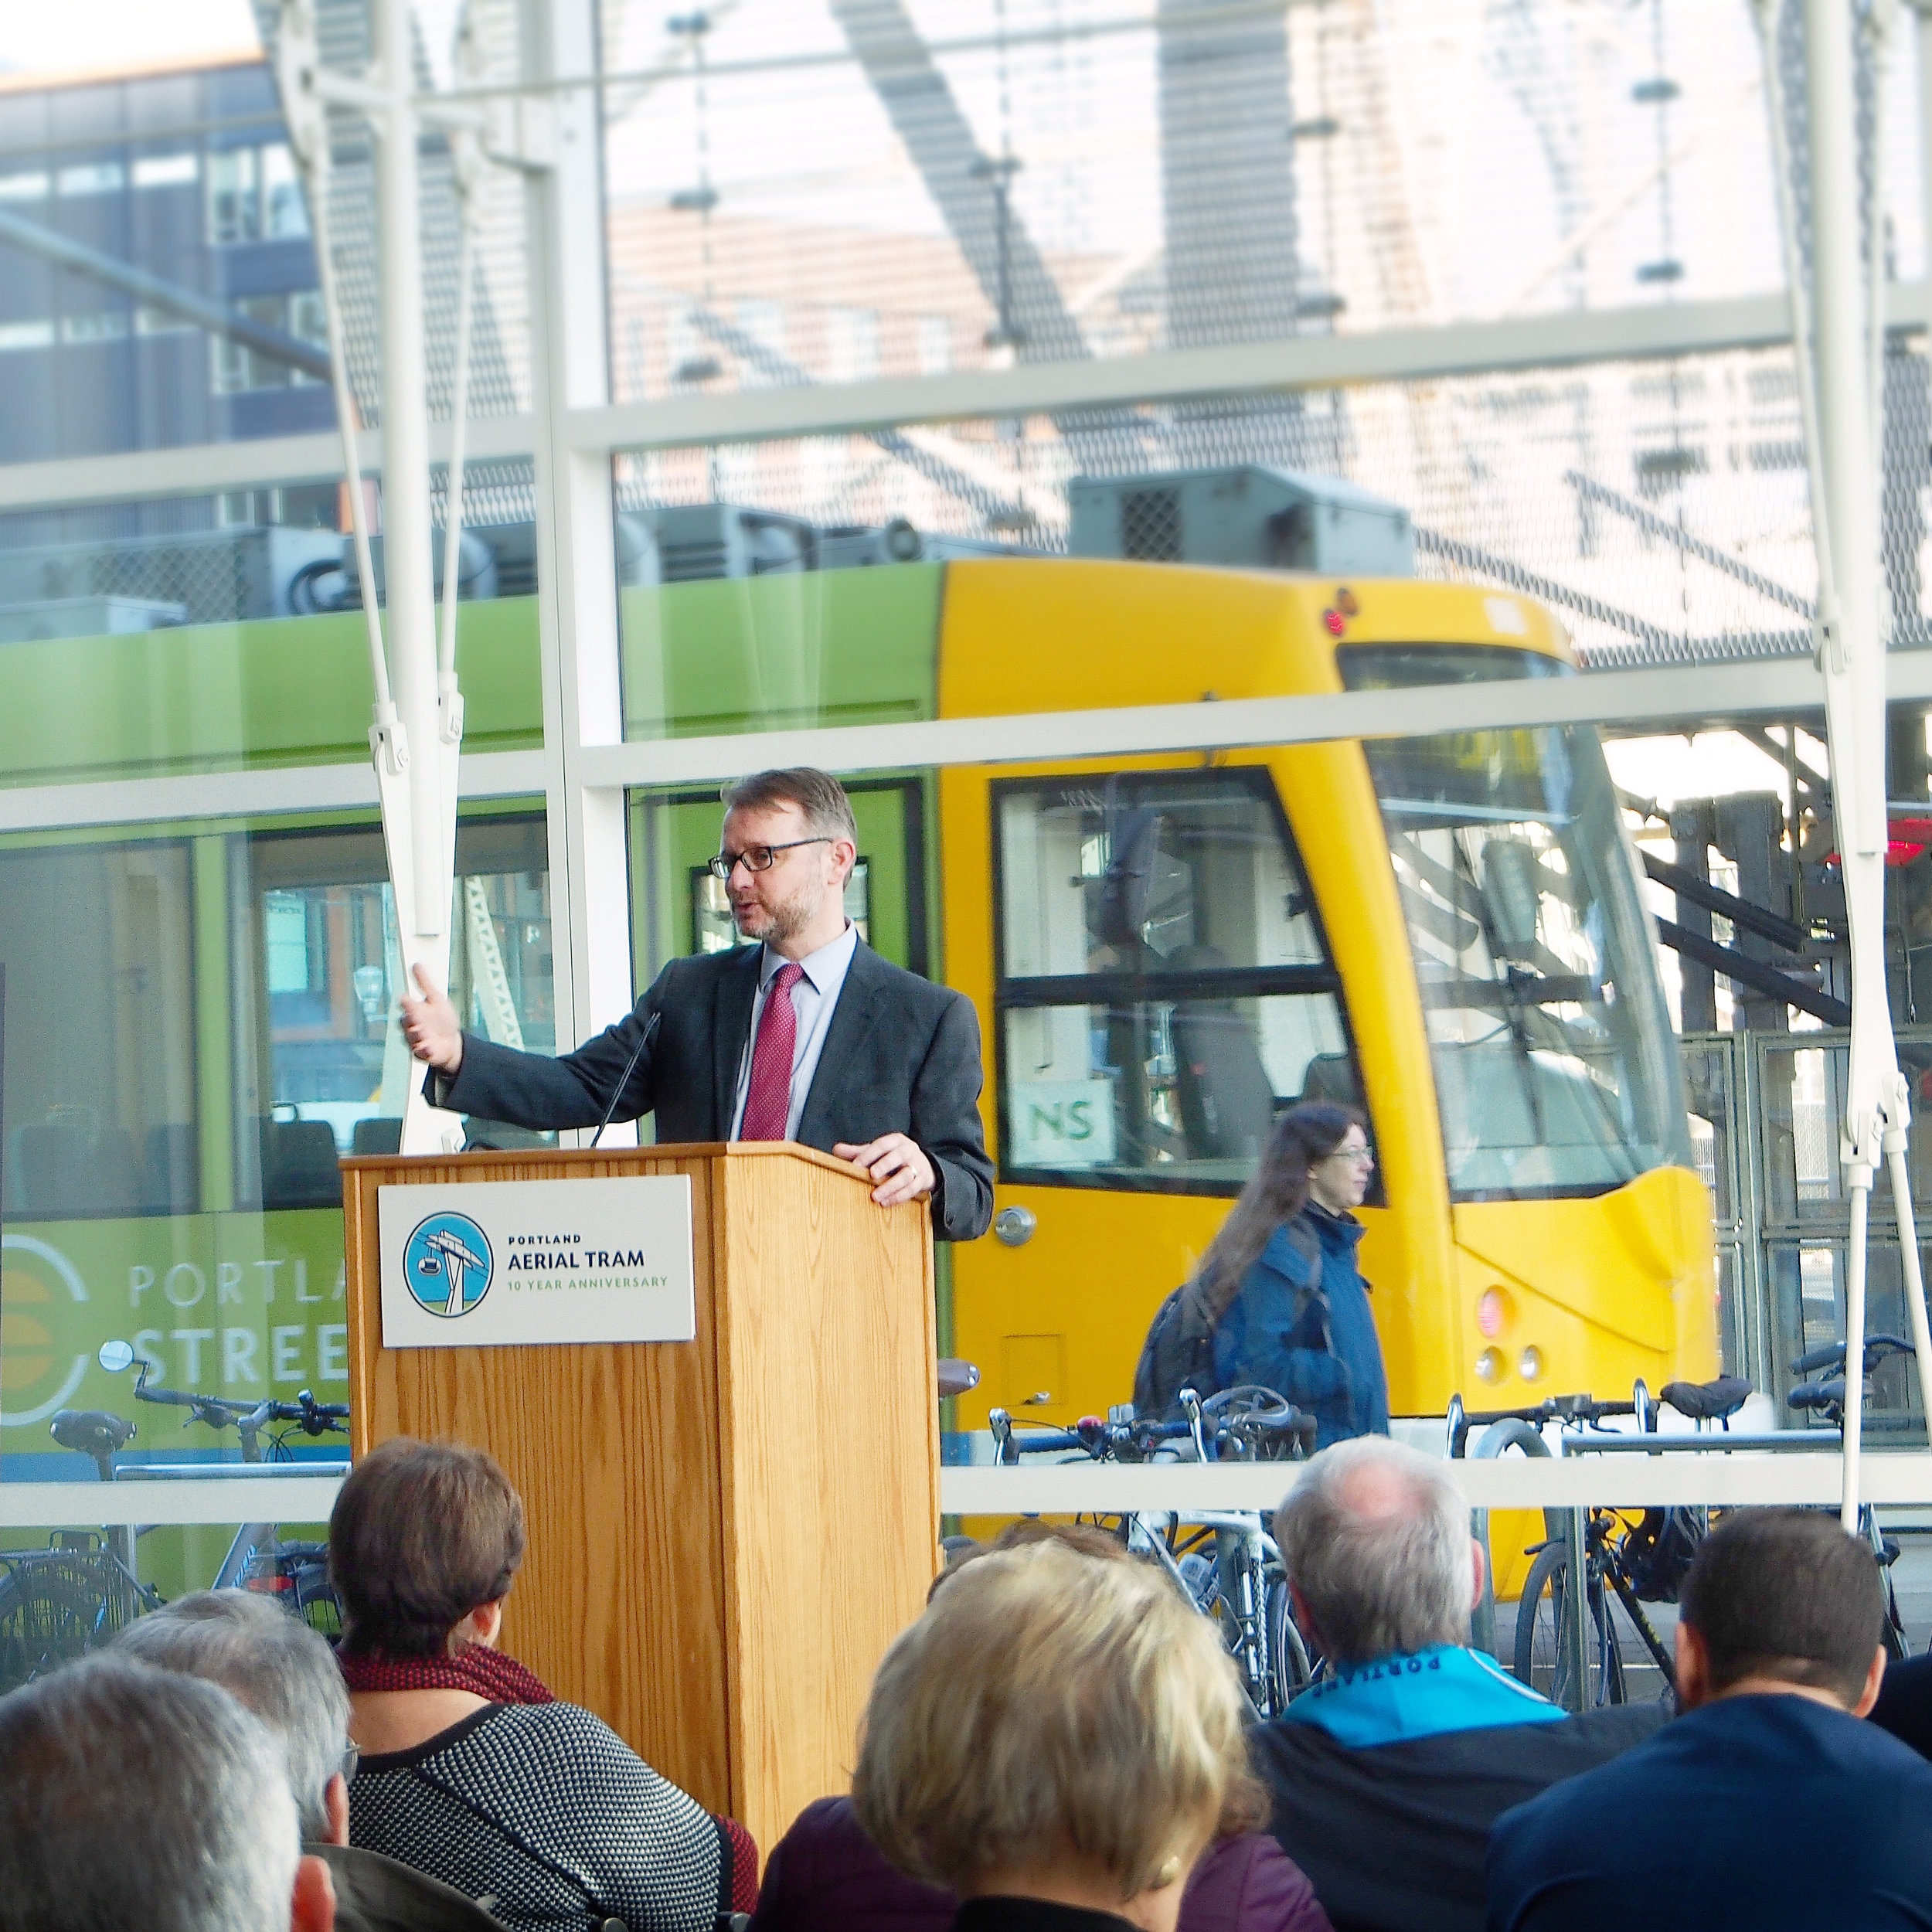 Brian Newman, OHSU Vice President, Campus Development and Administration